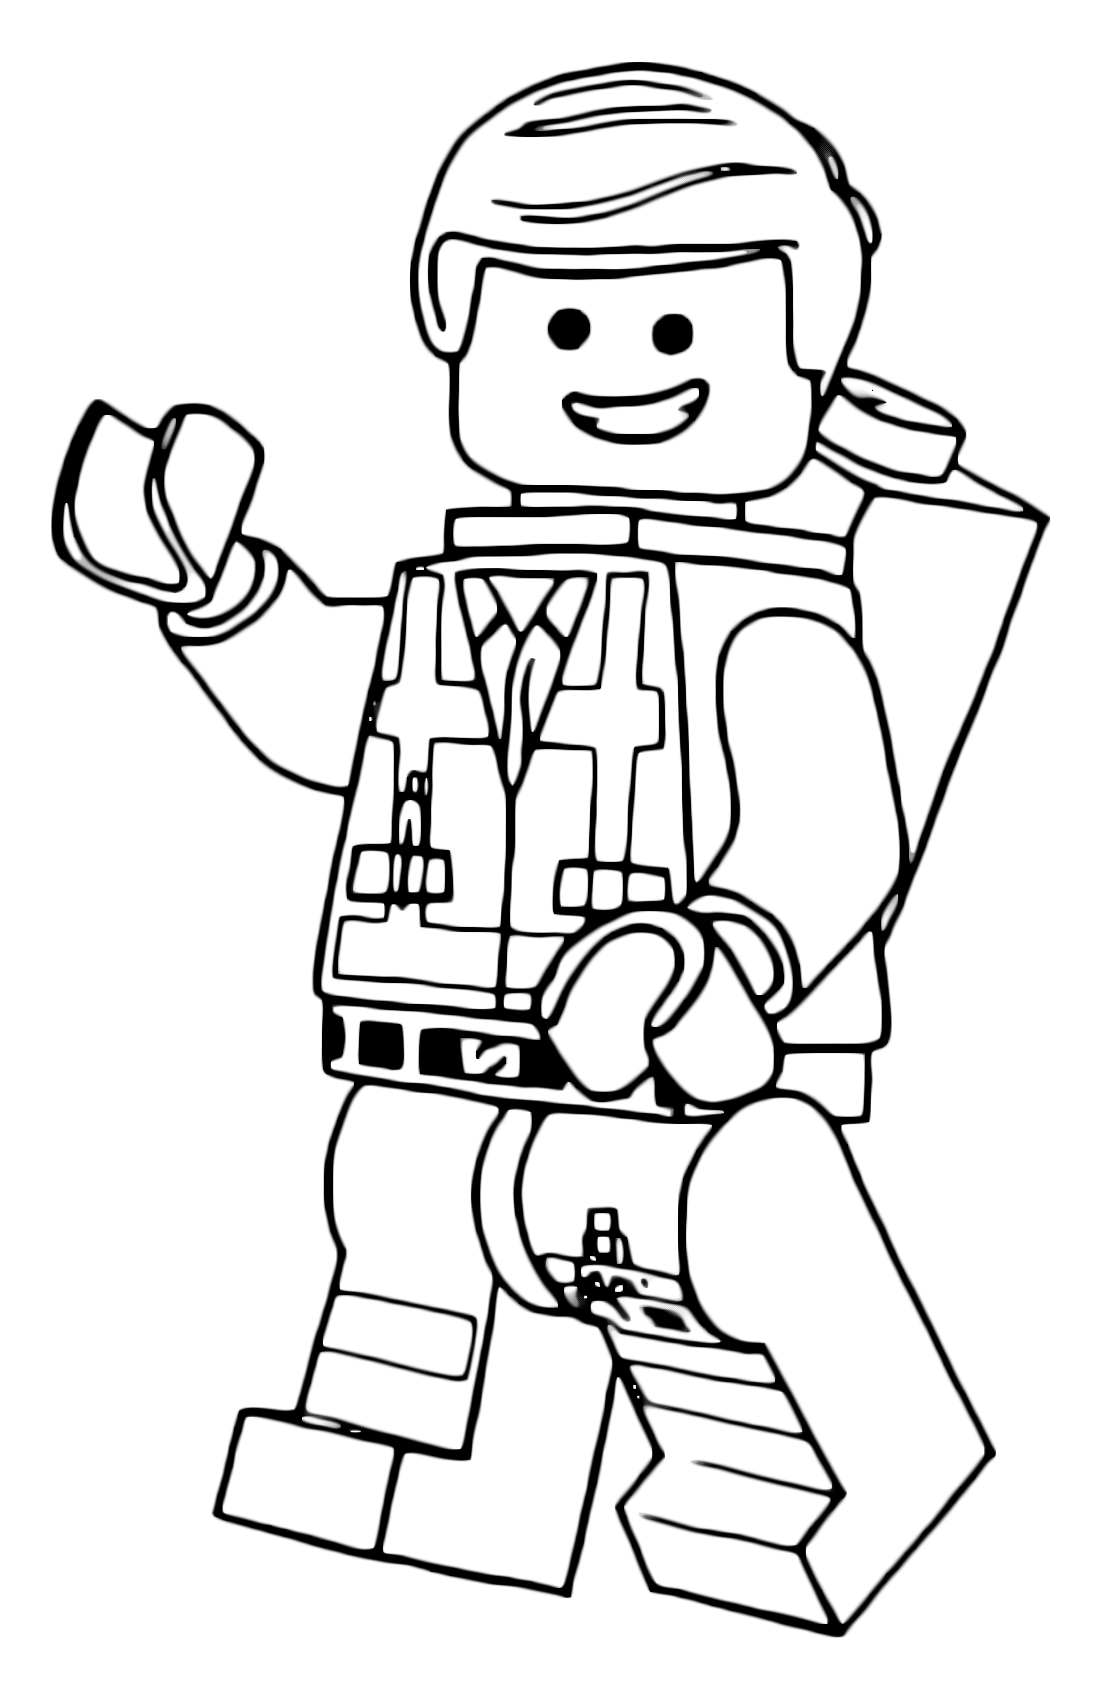 lego colouring in pictures lego star wars coloring pages to download and print for free colouring pictures lego in